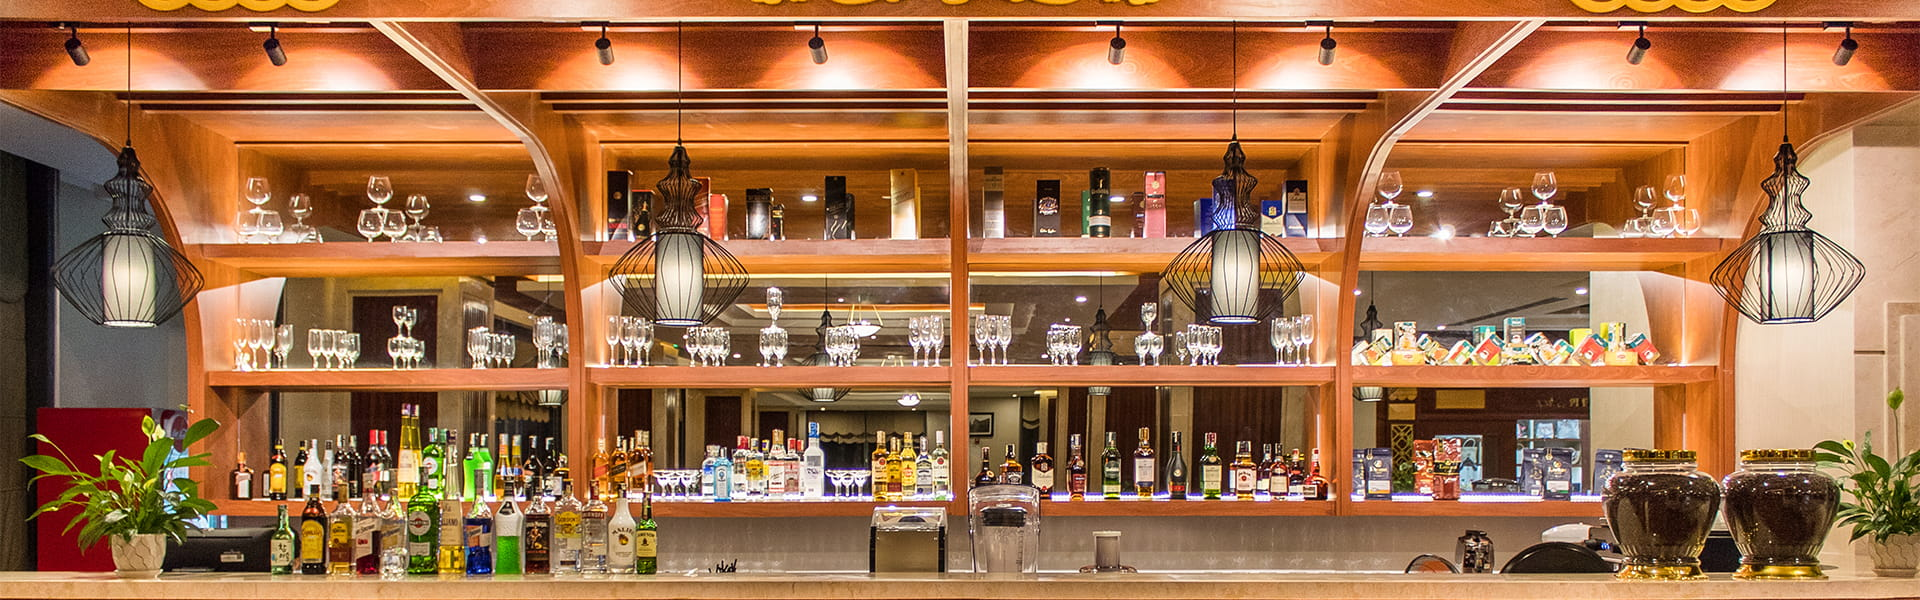 Sonata-Lounge-Bar-Header